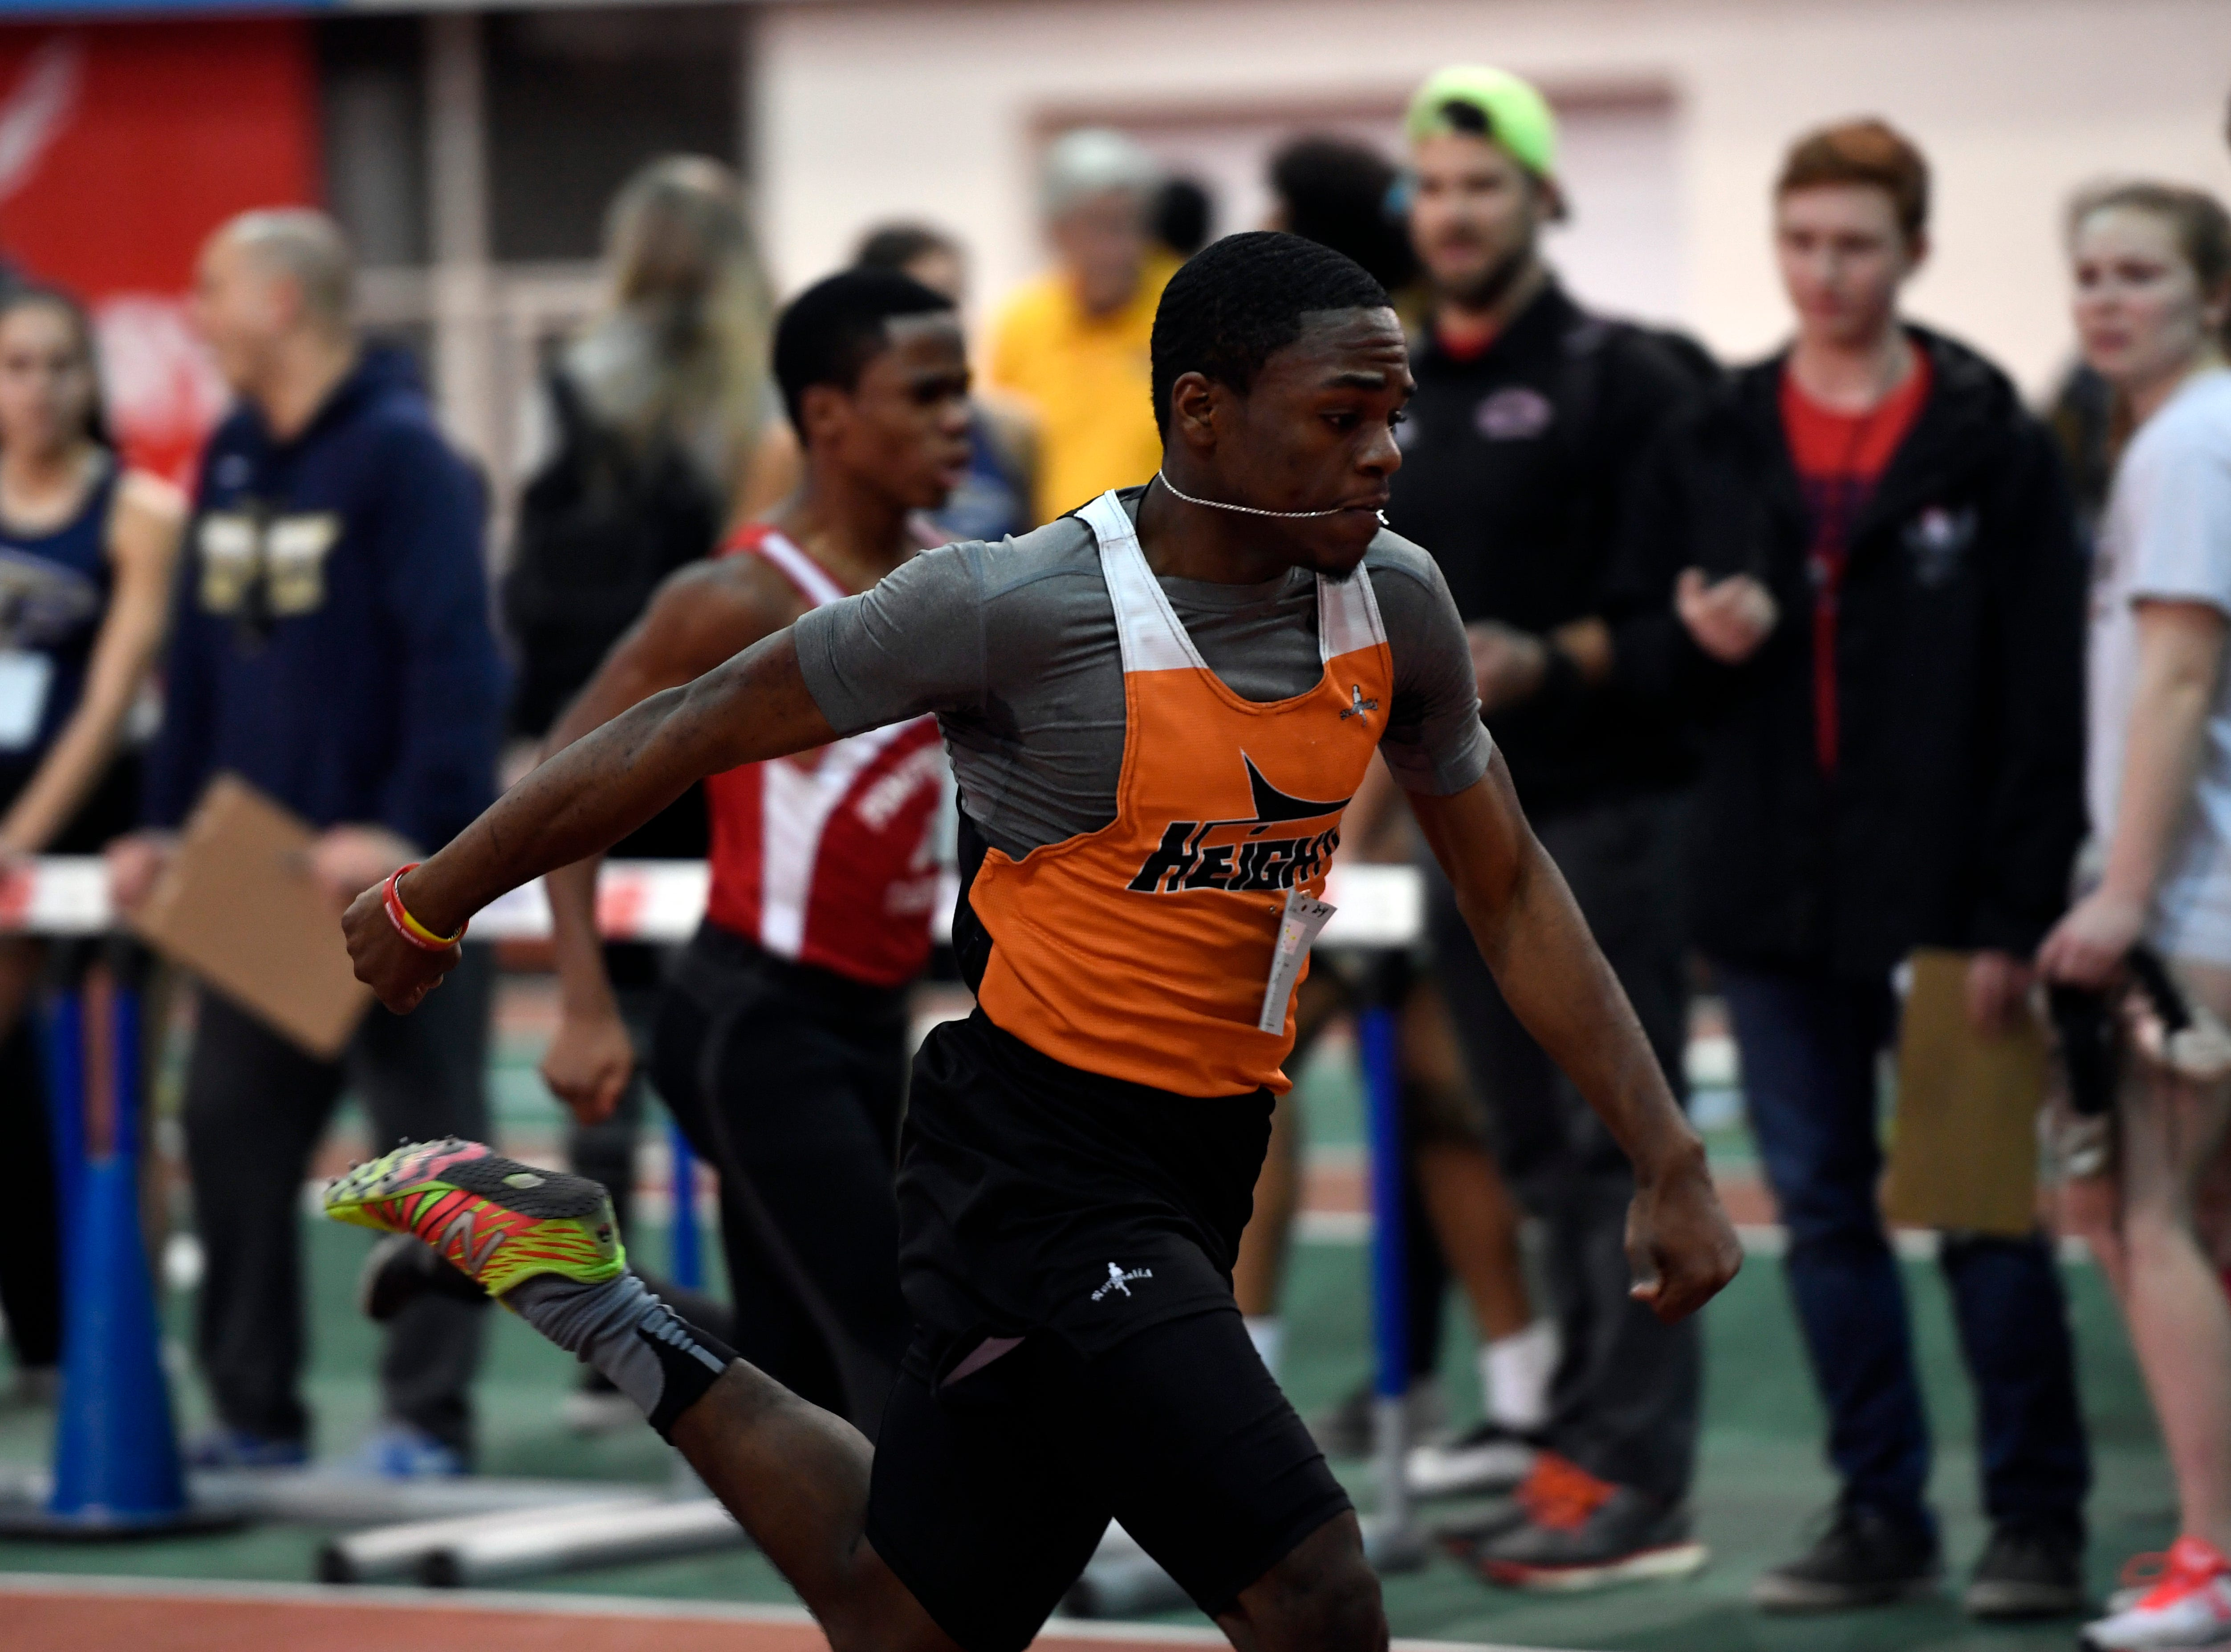 Maliki Burrell of Hasbrouck Heights finishes second in the 55-meter dash during the NJIC track meet at the Armory Track on Monday, Jan. 7, 2019, in New York.